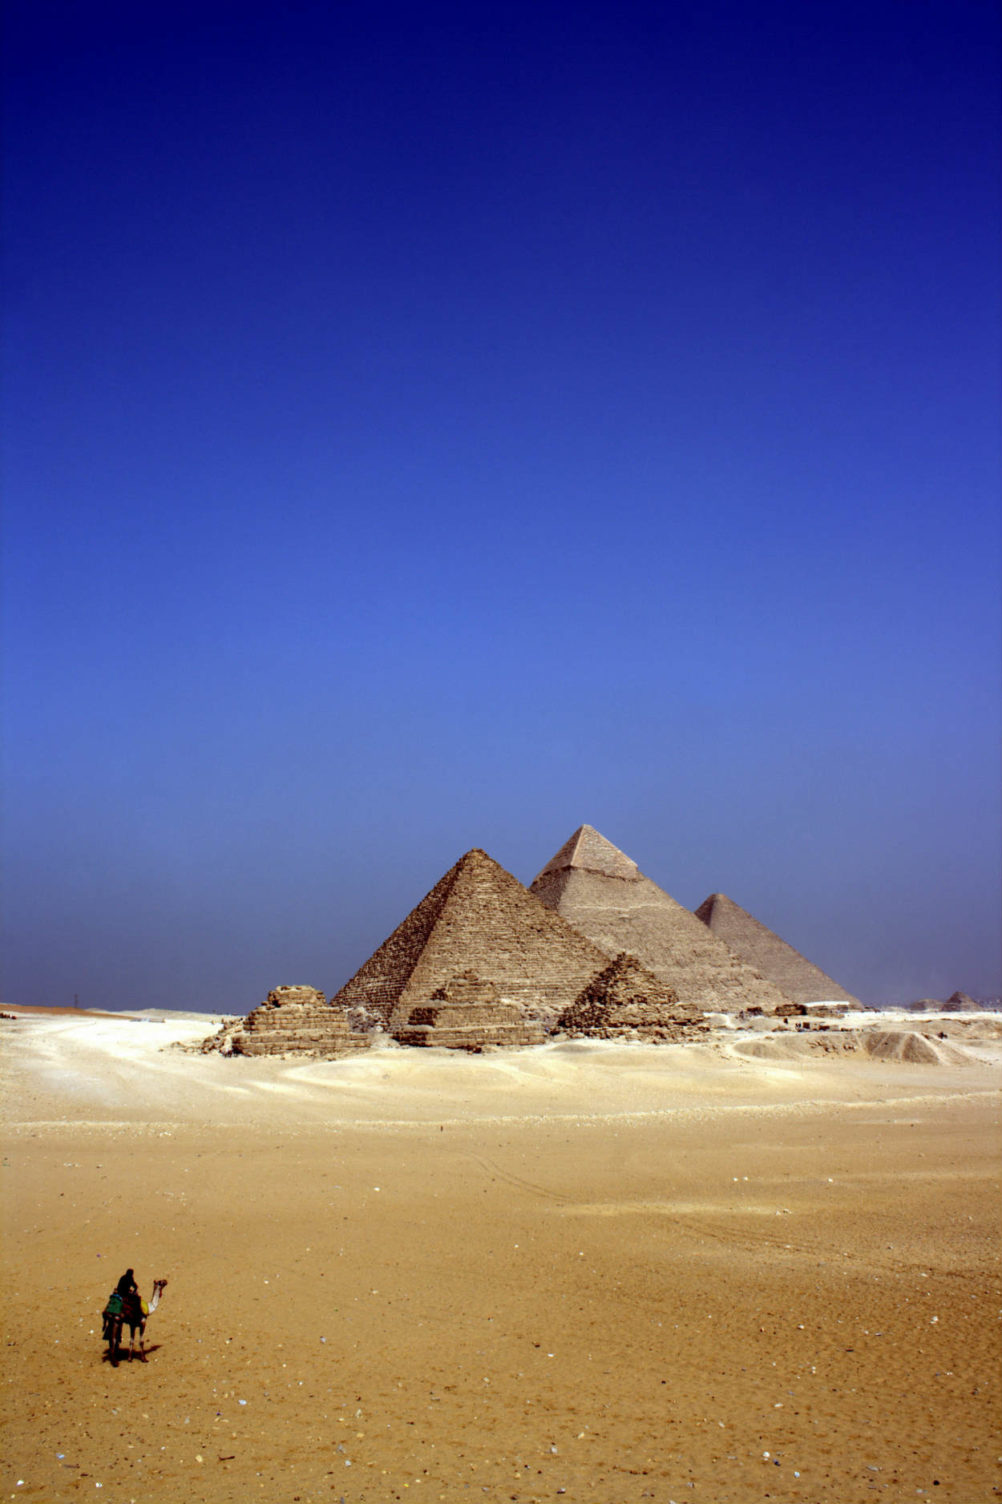 pyramids-ancient-egypt-travel-archaeology-ute-junker